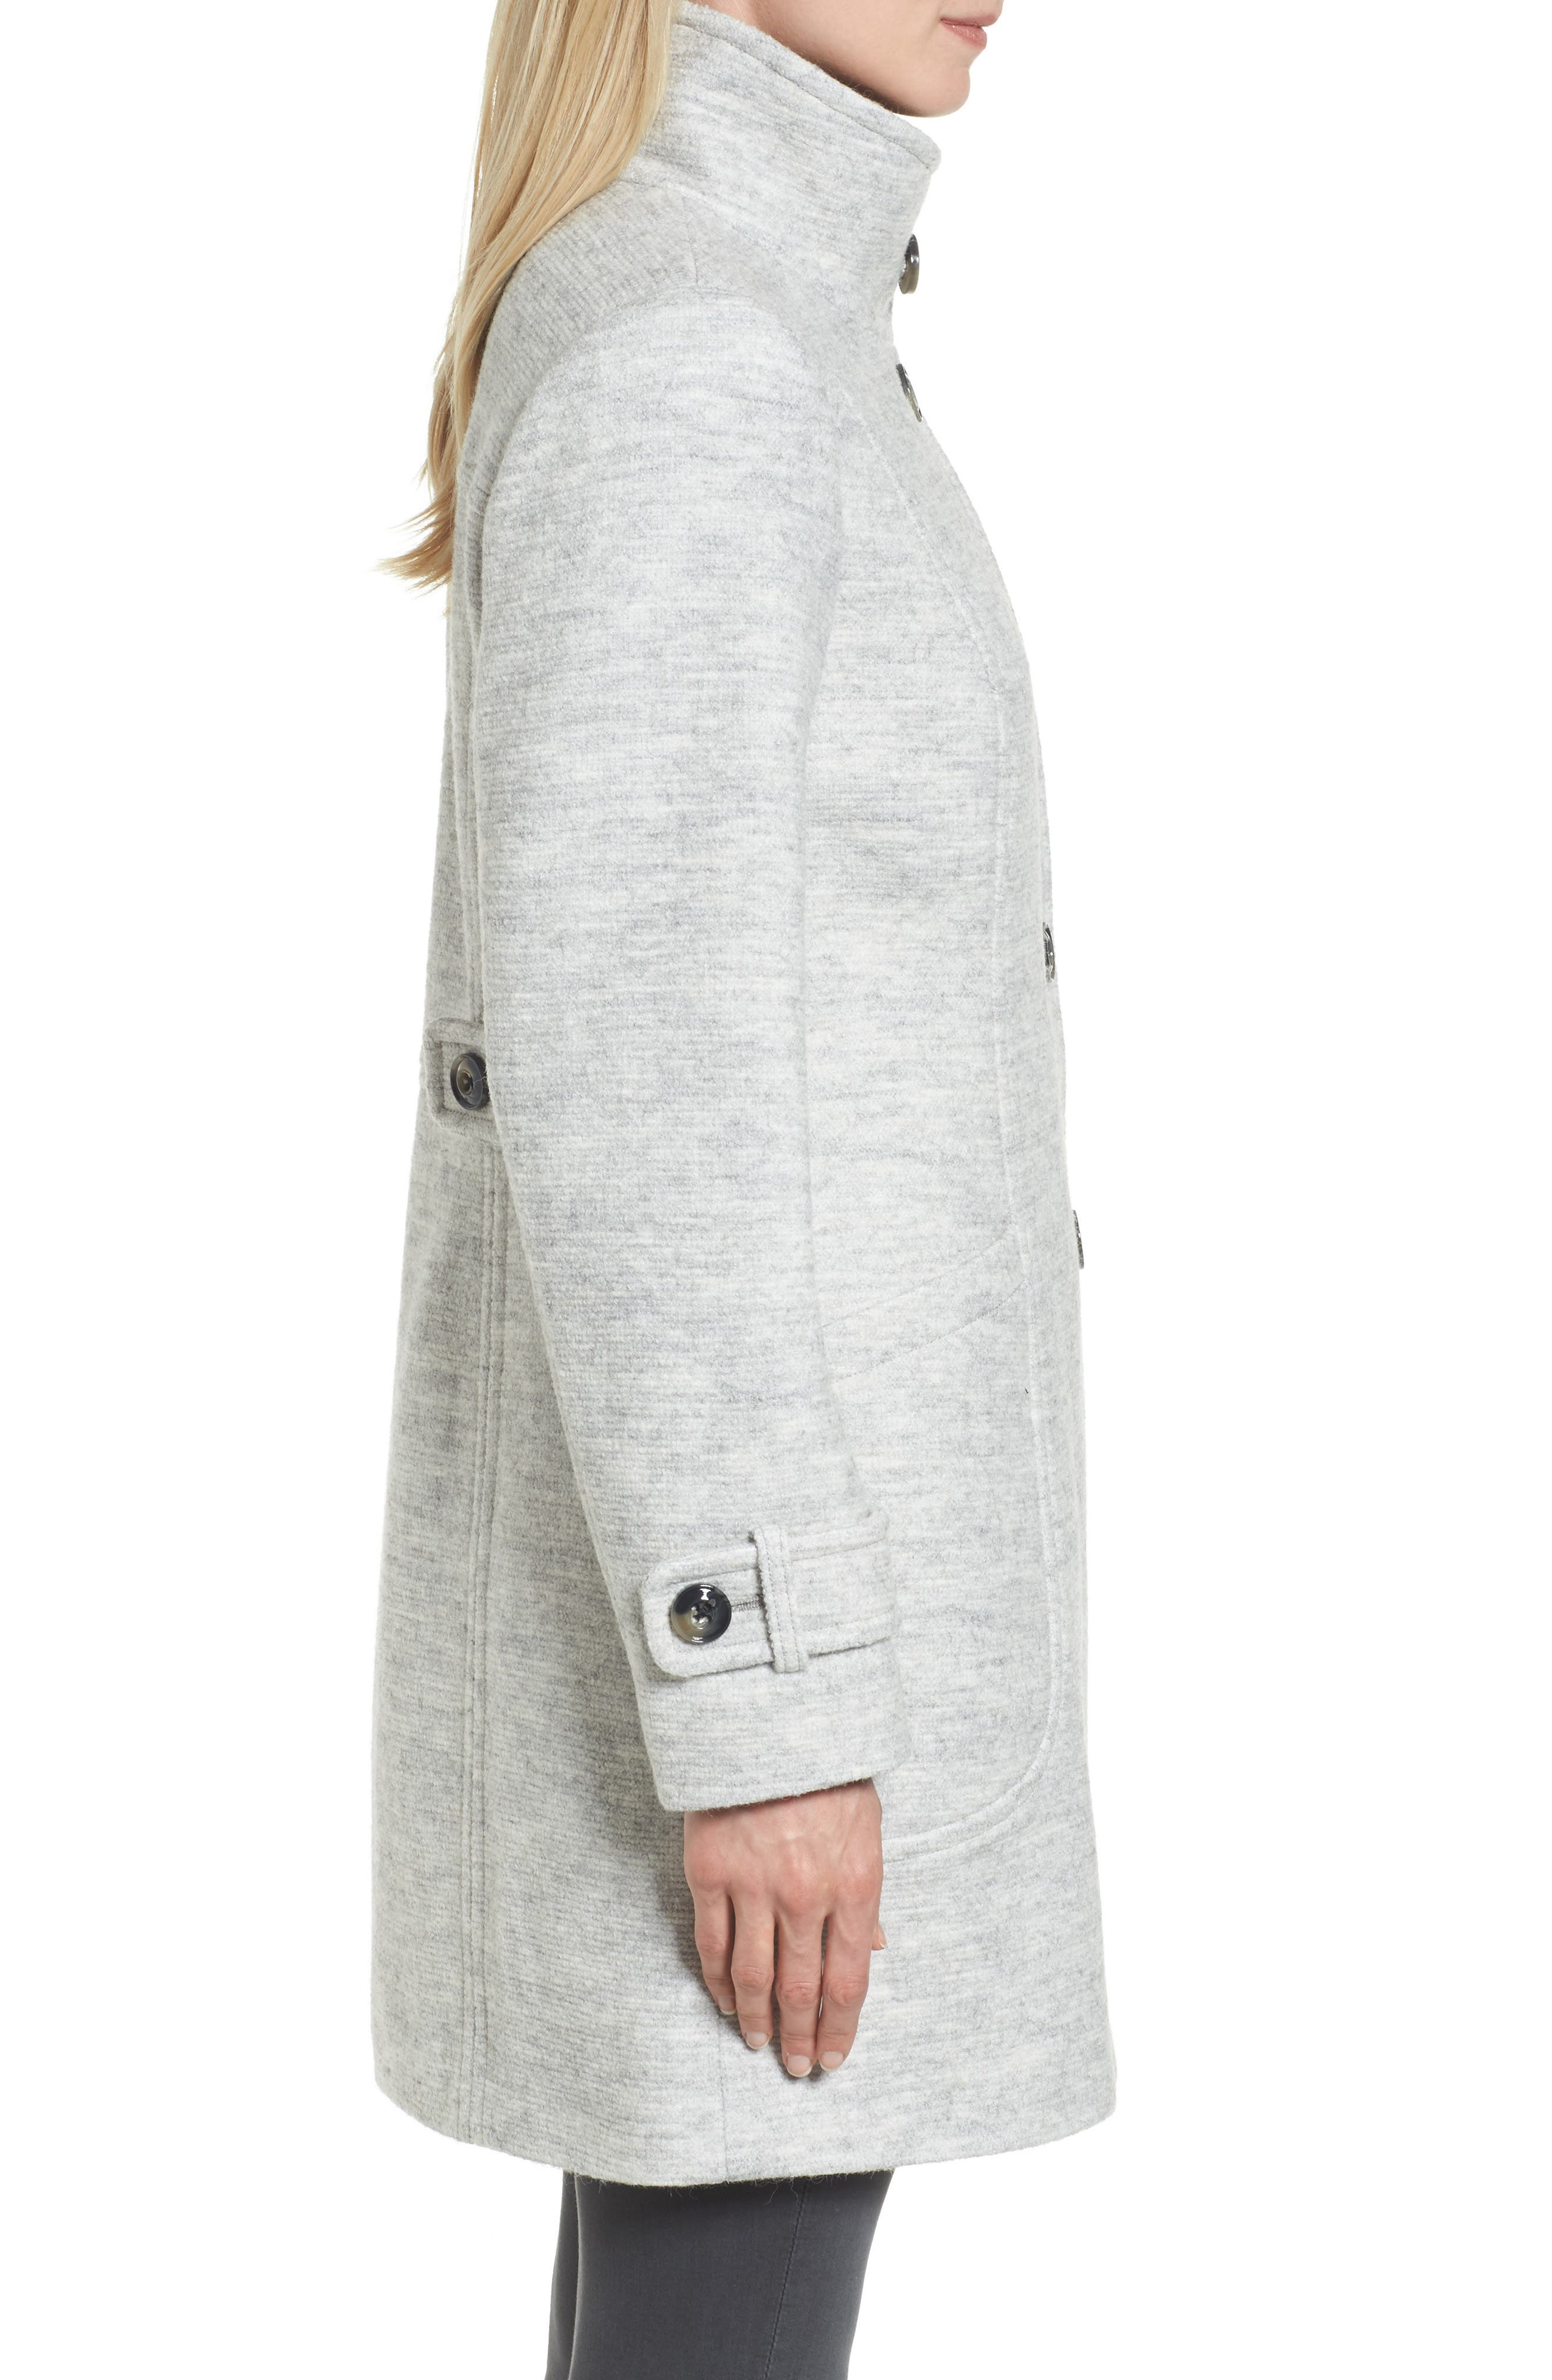 Stand Collar Coat,                             Alternate thumbnail 3, color,                             Pale Grey